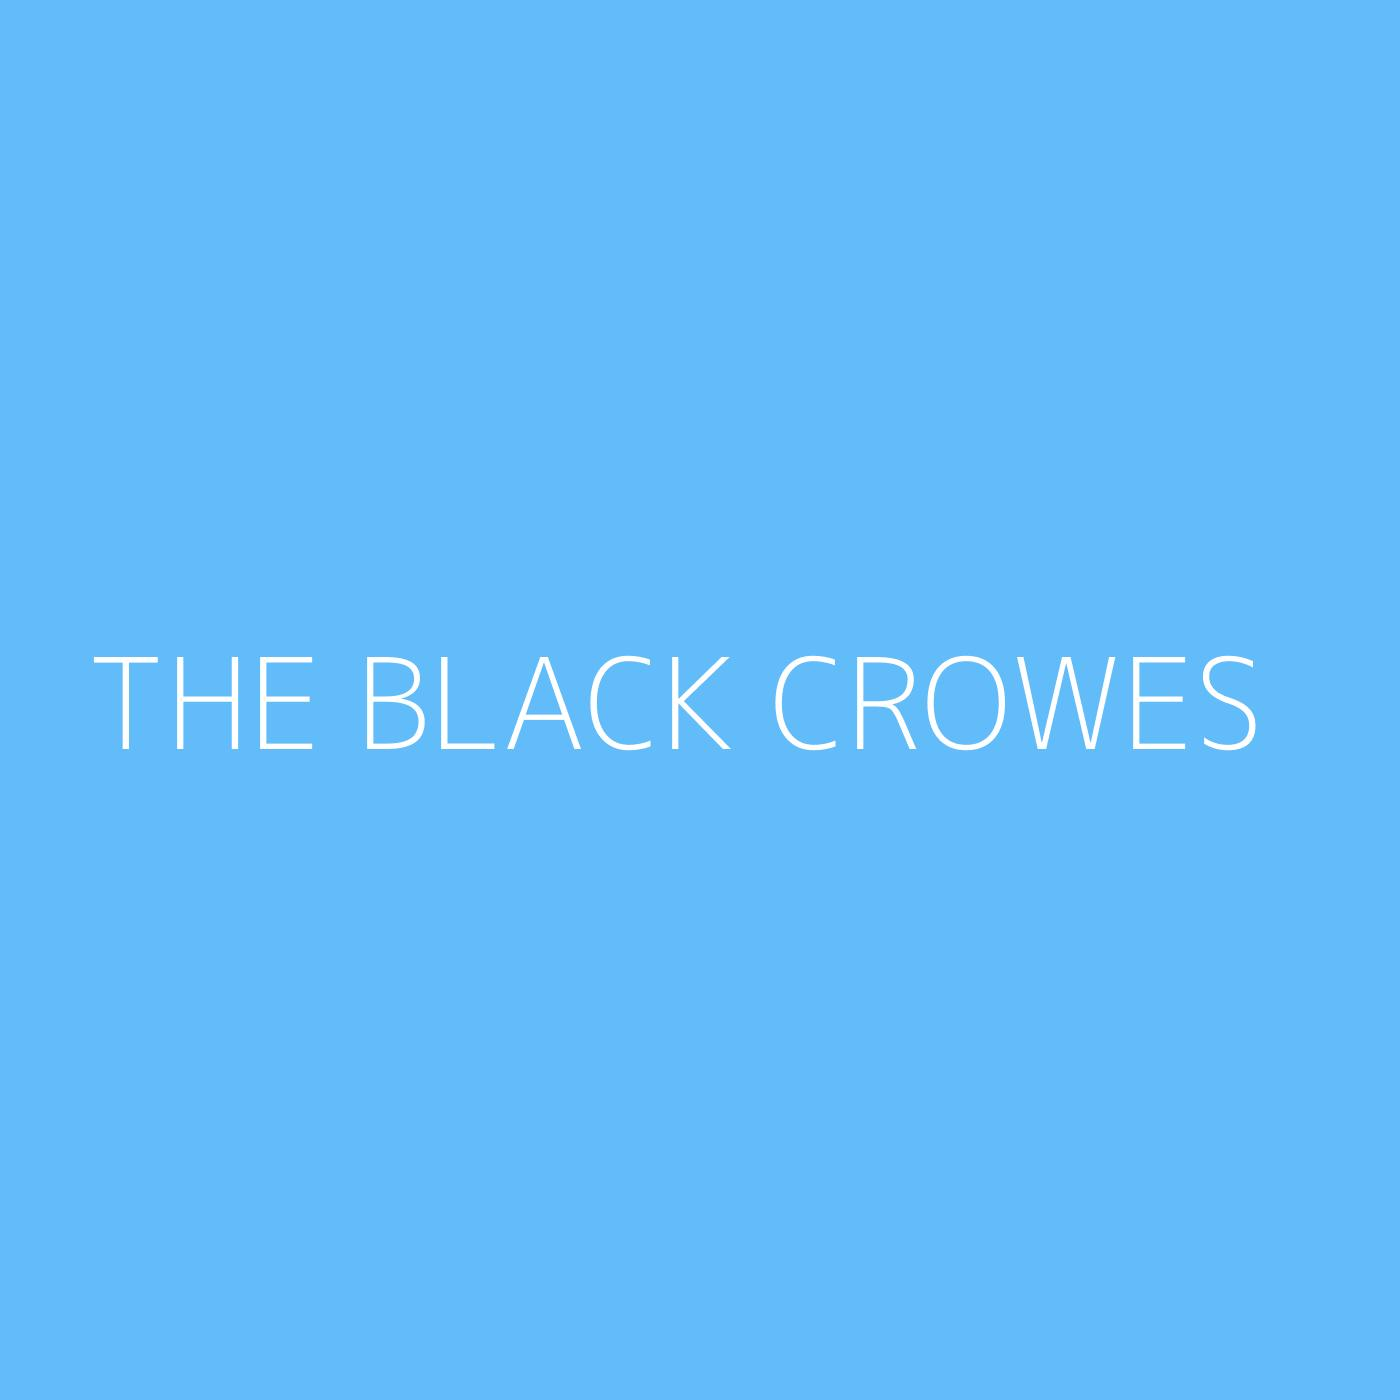 The Black Crowes Playlist Artwork